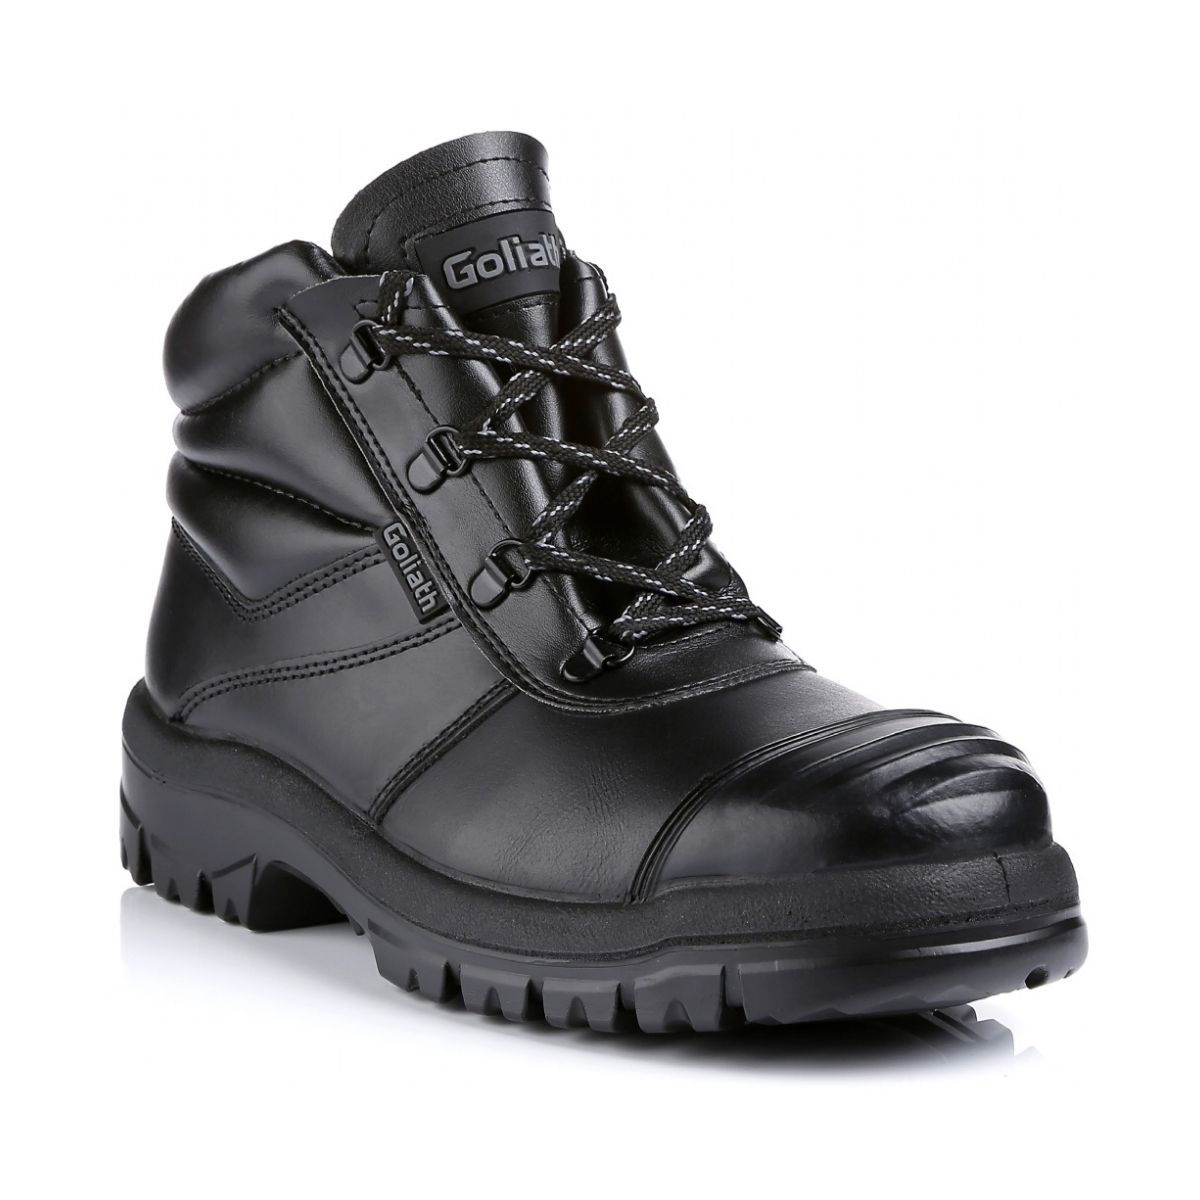 SF1700 Goliath DDR Groundmaster Safety Chukka Boot